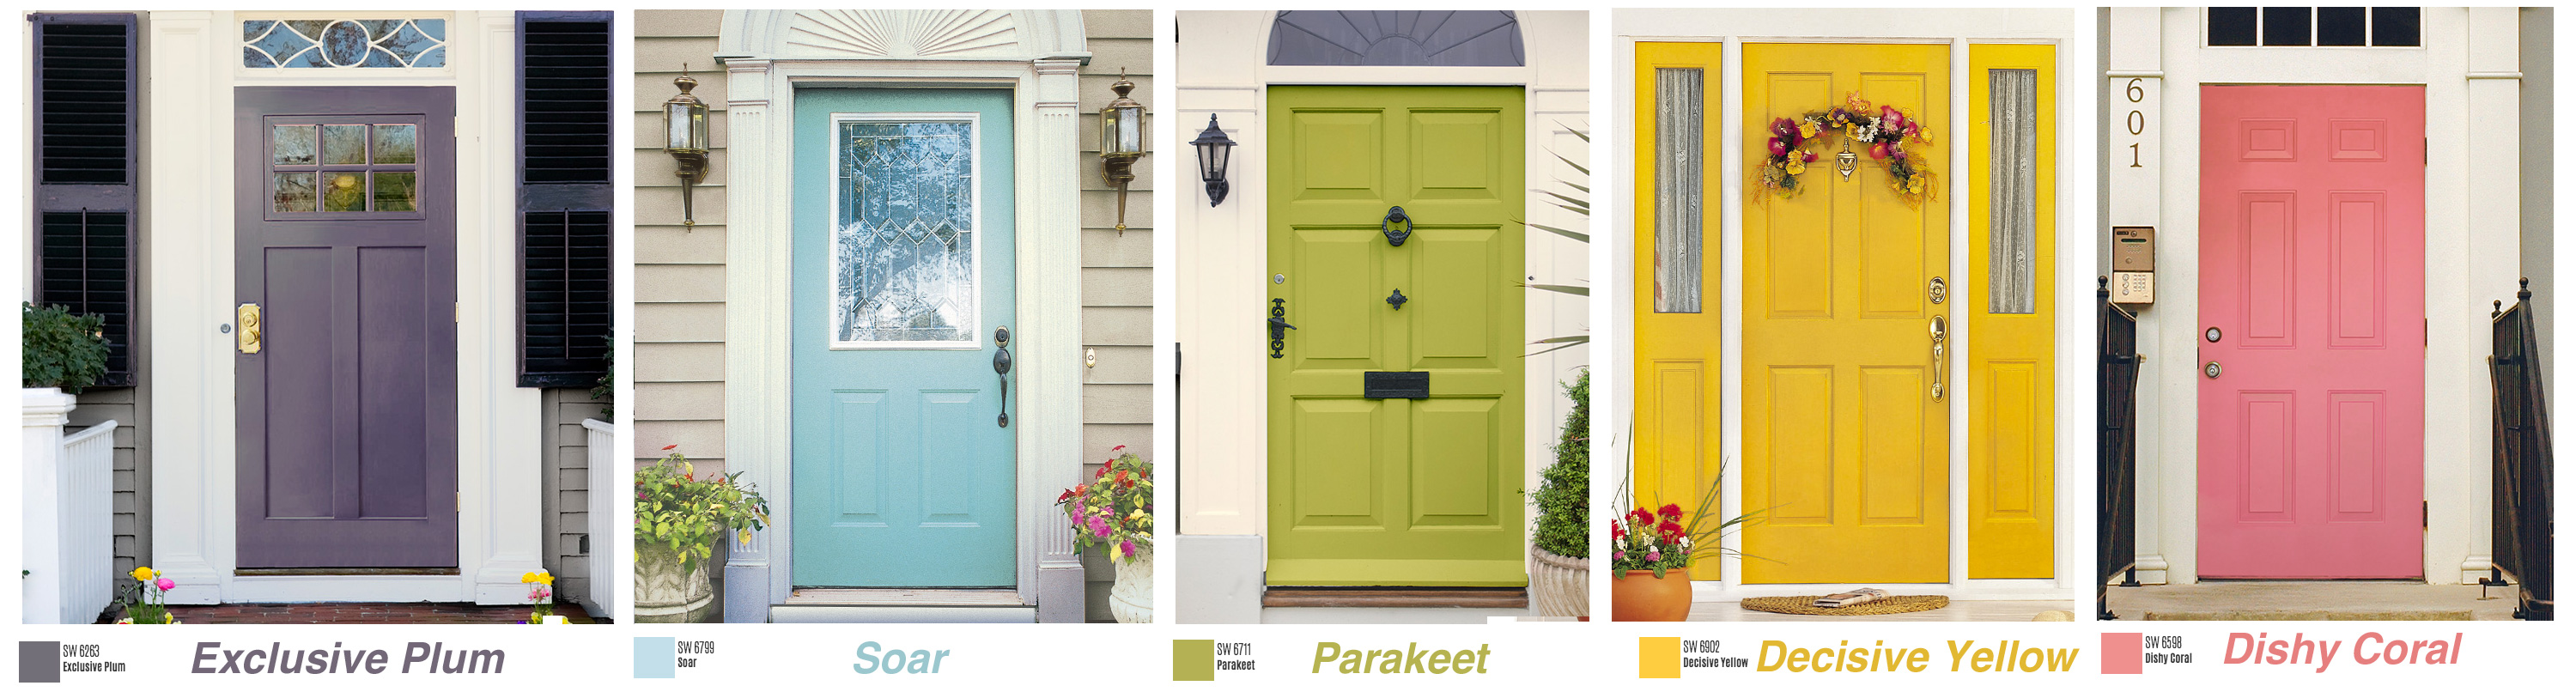 Dallas Real Estate How To Improve Curb Appeal Colorful Door